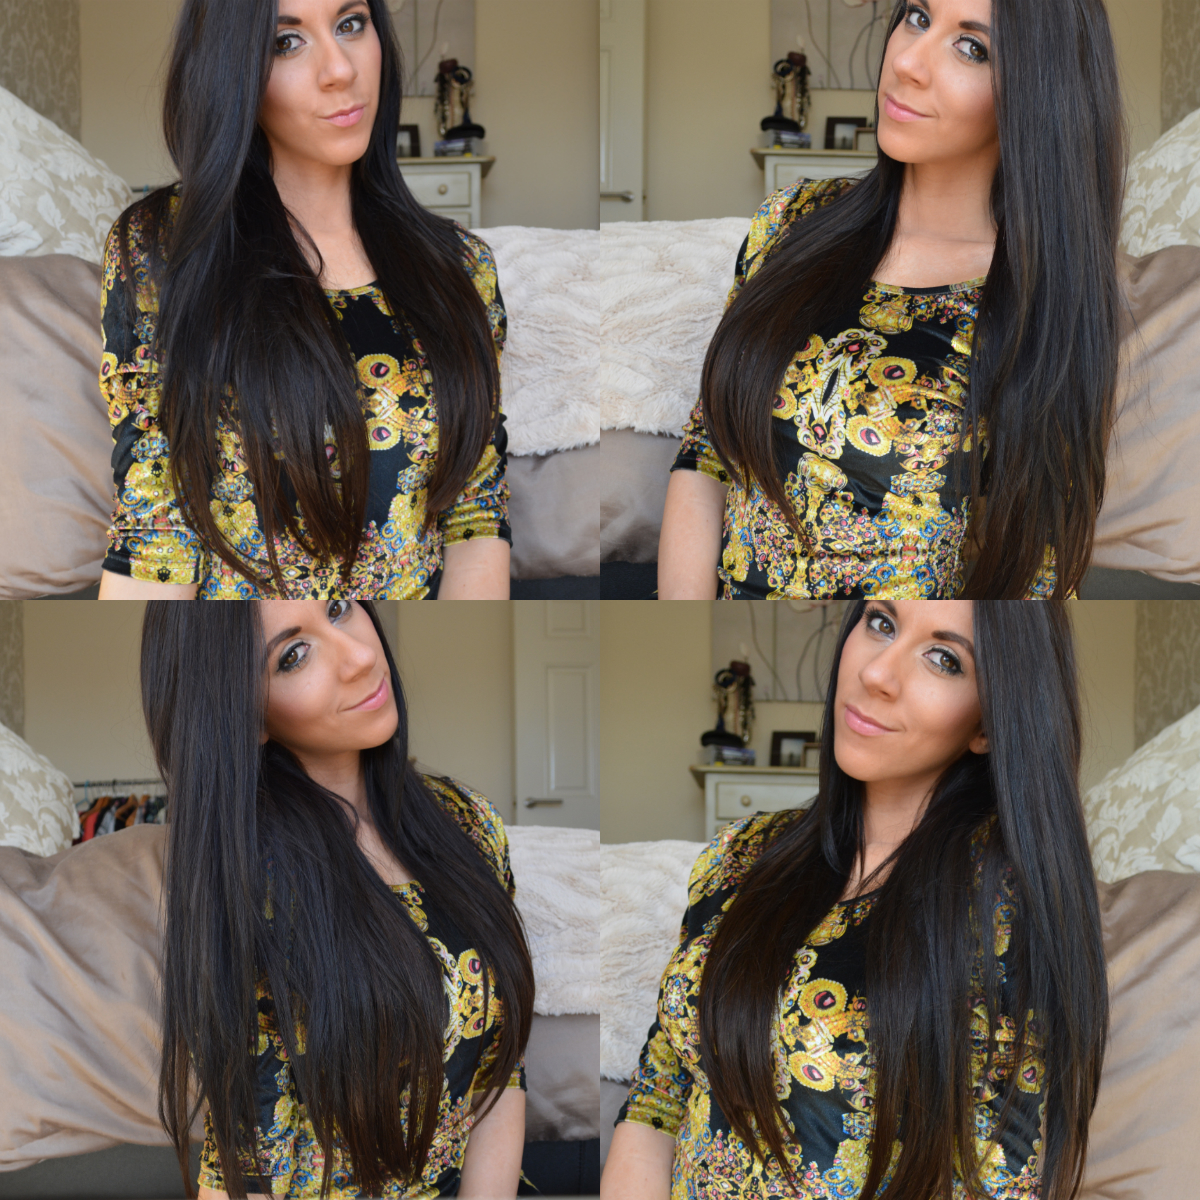 Dirty Looks Hk Hair Extensions Review Miss Sunshine And Sparkle